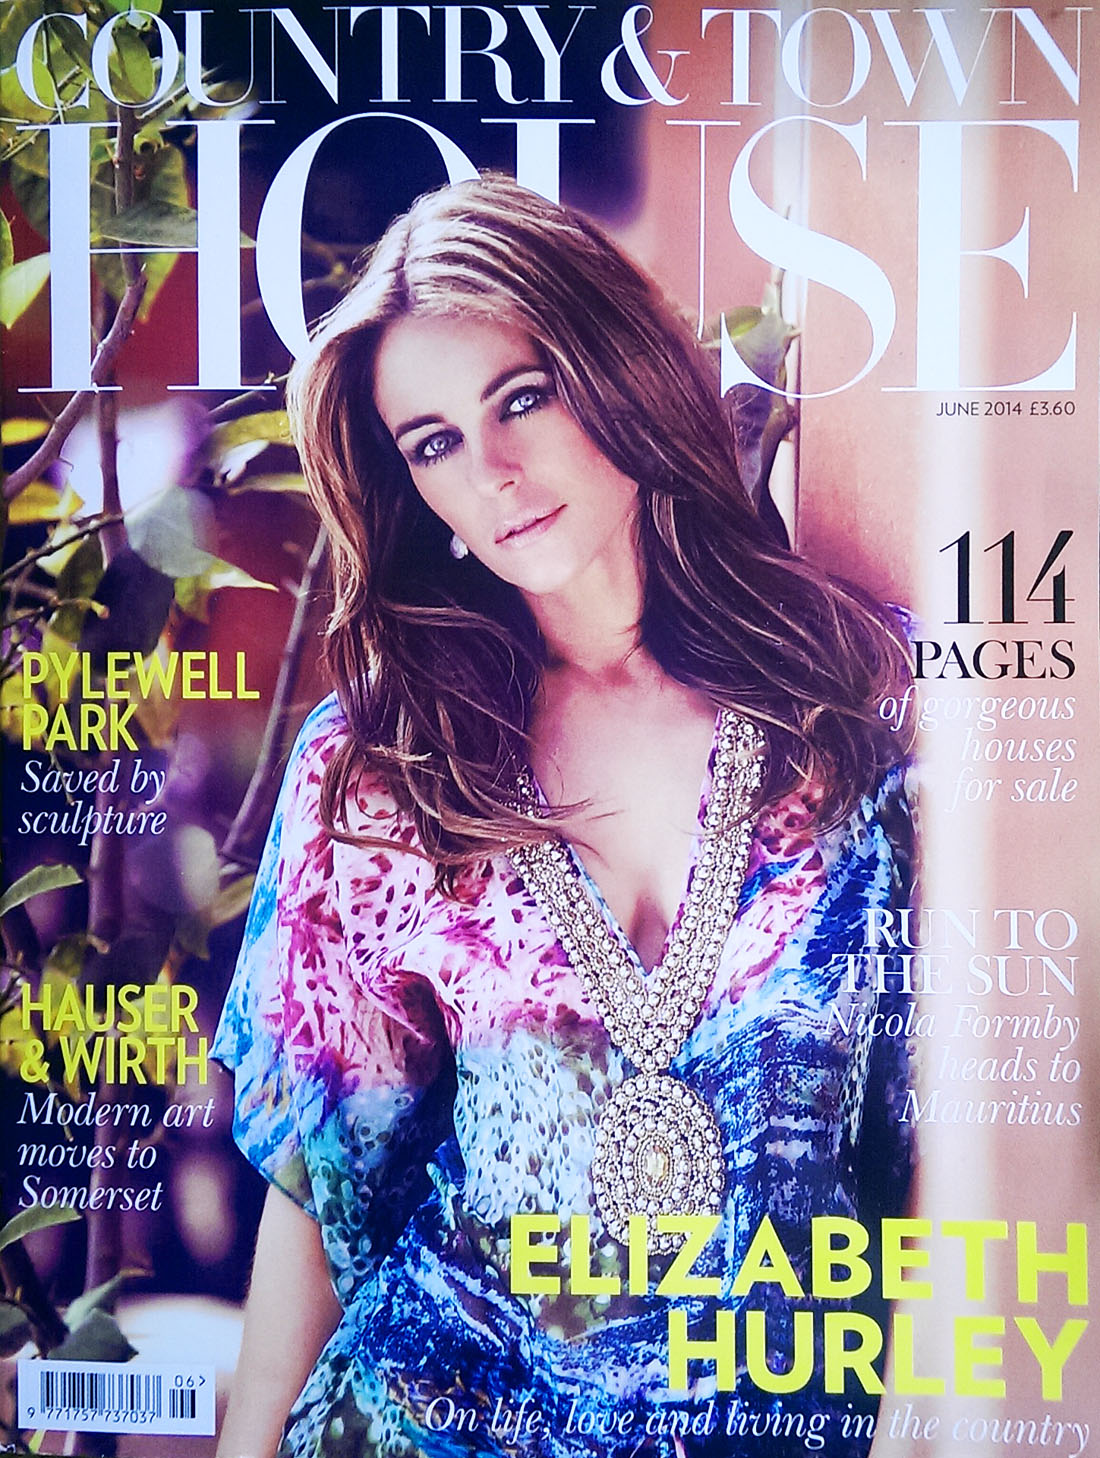 COUNTRY & TOWN HOUSE - MAY 2014